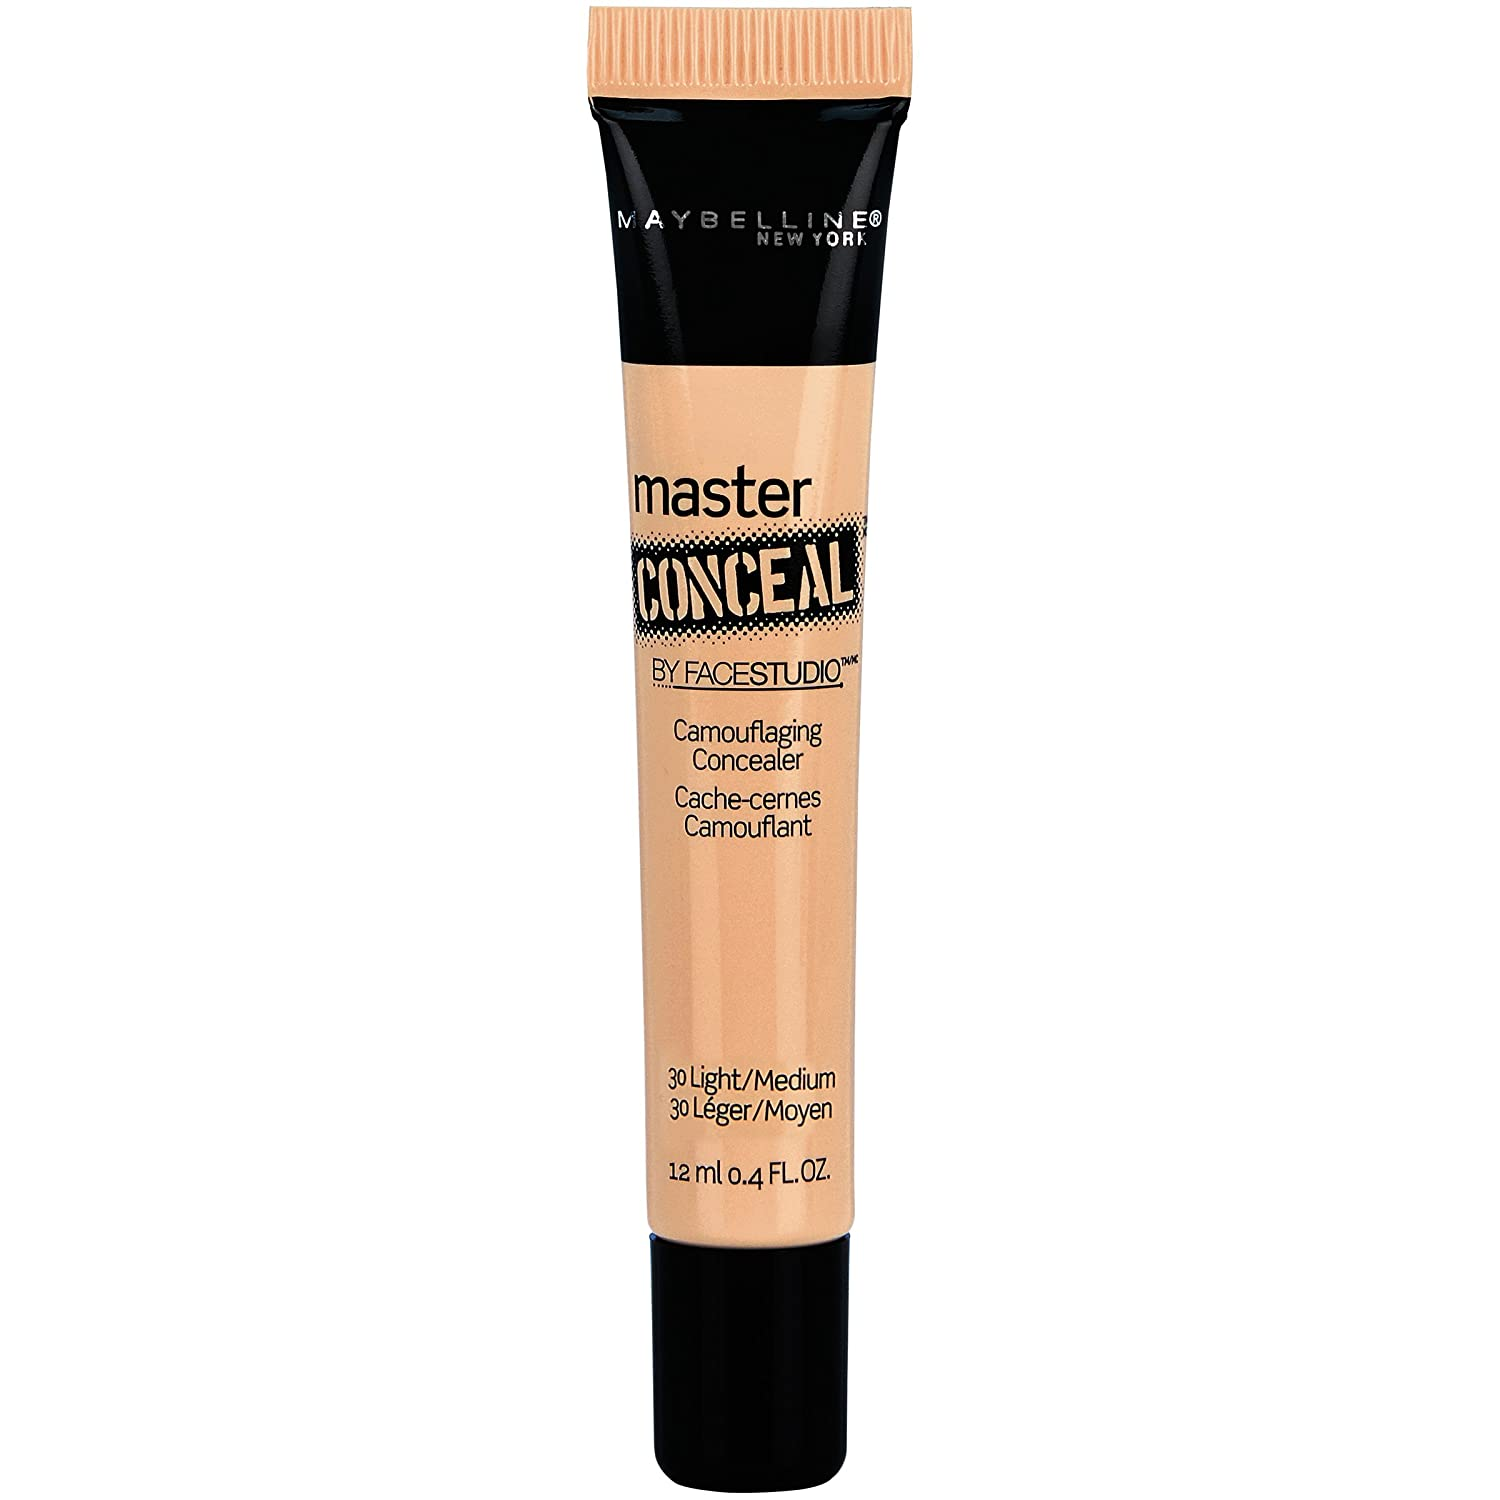 Maybelline New York Face Studio Master Conceal Makeup, Light/Medium, 0.4 Fluid Ounce by Maybelline New York K1819500